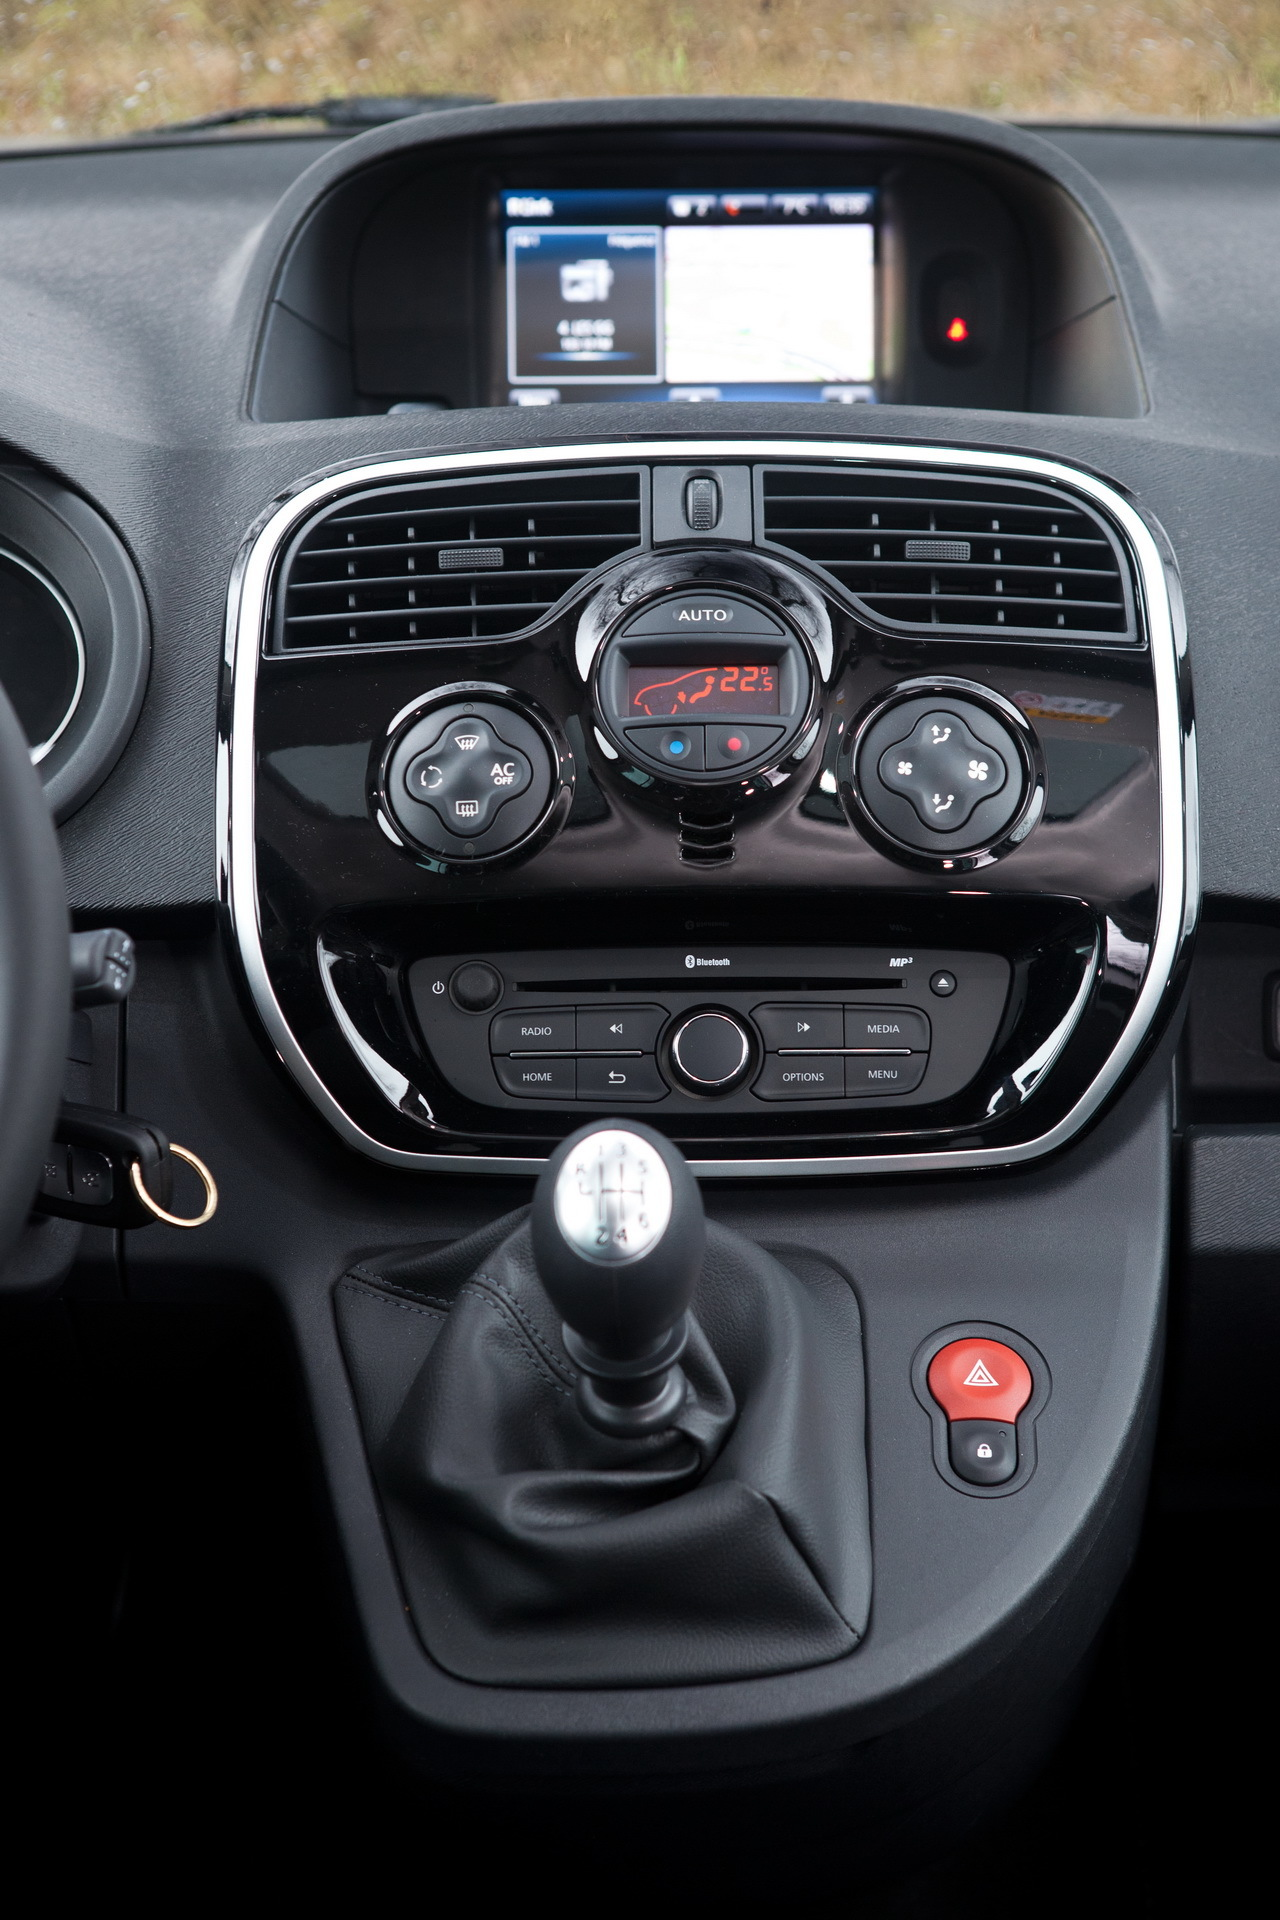 essai du renault kangoo extrem 2014 photo 10 l 39 argus. Black Bedroom Furniture Sets. Home Design Ideas